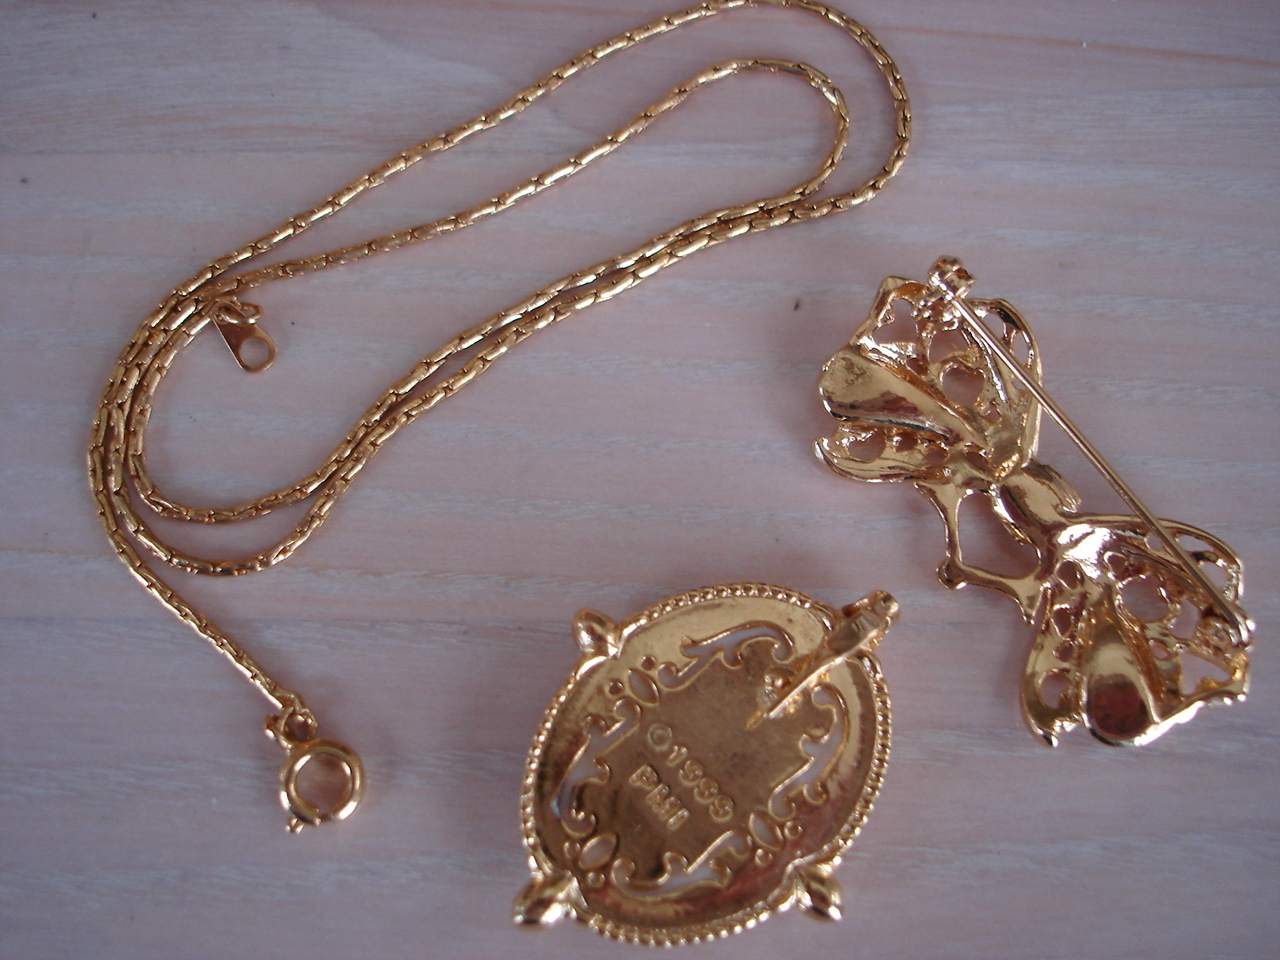 Precious Moments Goldtone Pendant, Brooch, Chain, 1999